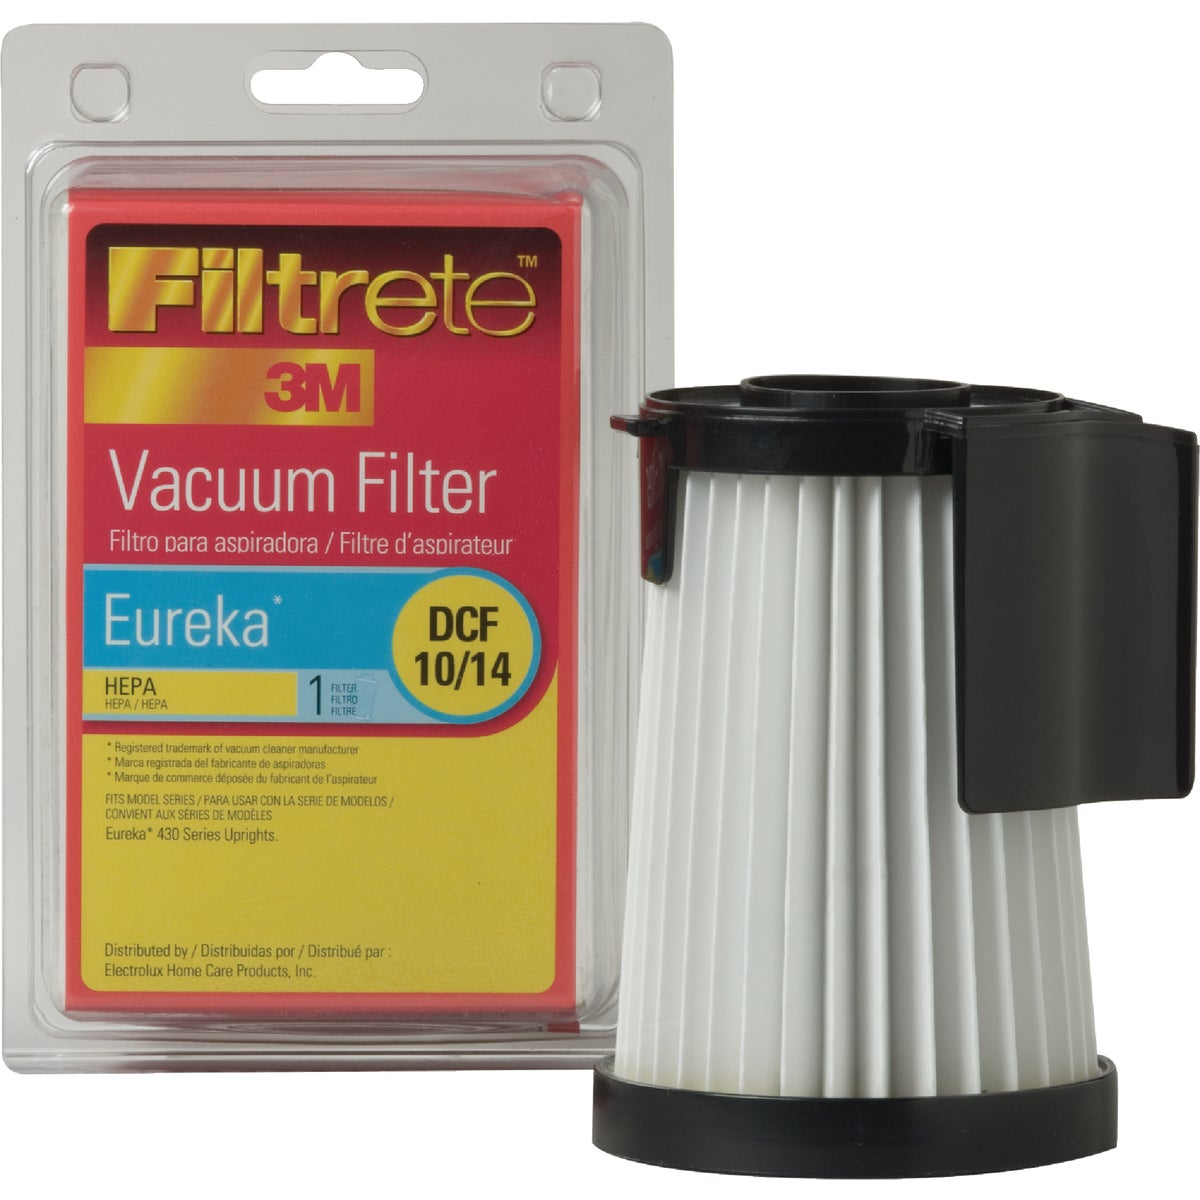 EUREKA HEPA VAC FILTER - 67800A-2 by Electrolux Home Care